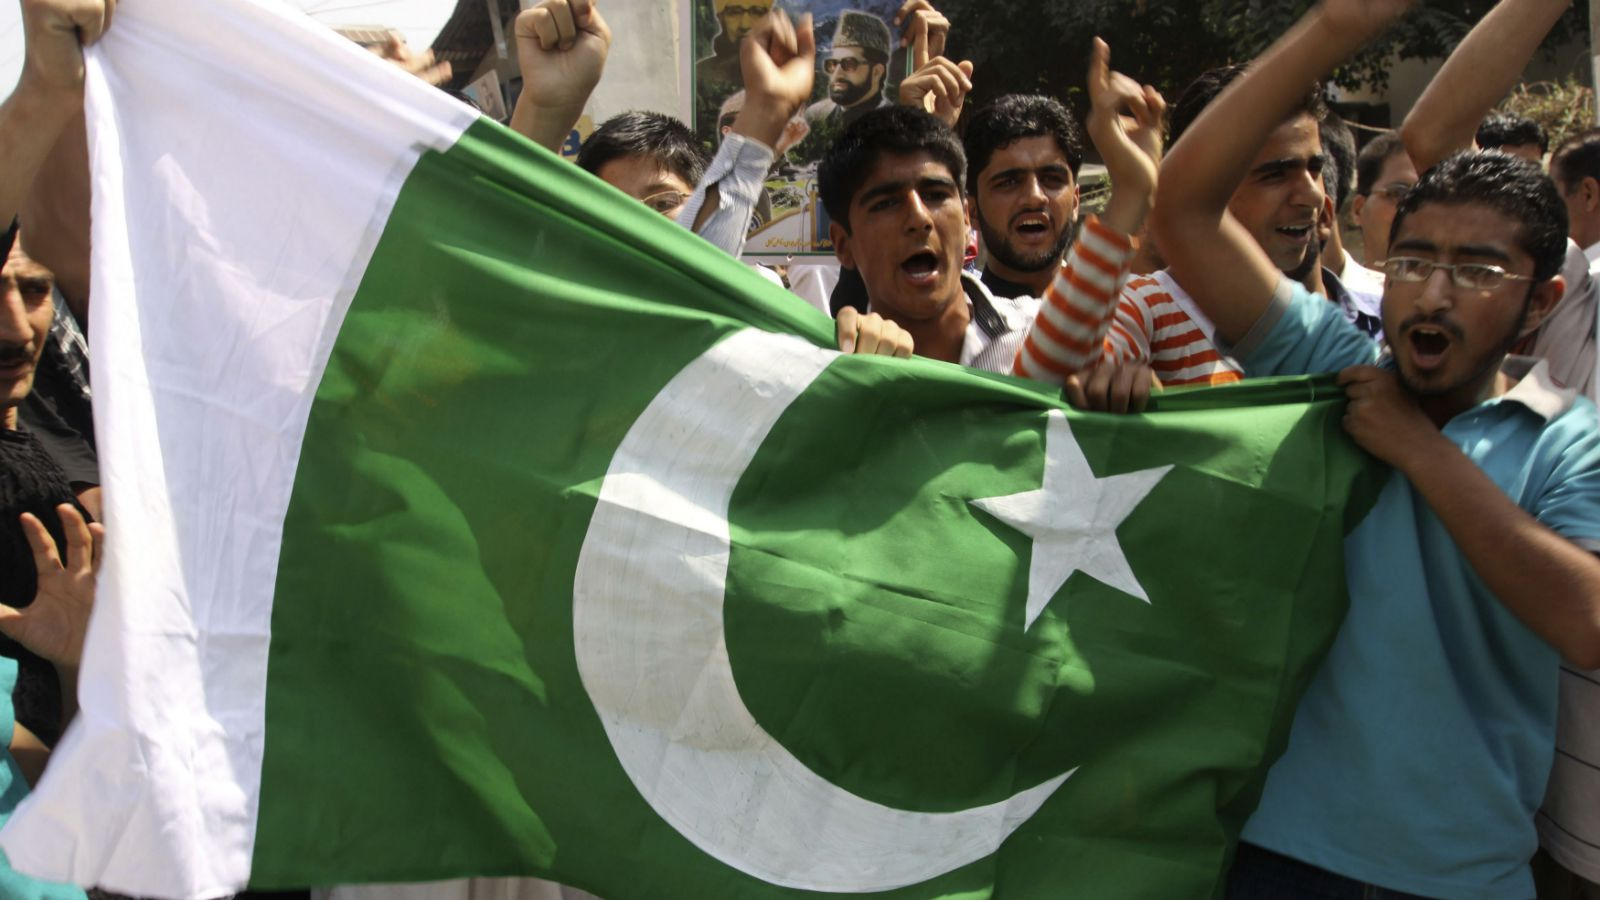 Kashmiri people hold a flag of Pakistan and shout freedom slogans during celebrations marking Pakistani Independence Day in Srinagar, India on Friday, Aug. 14, 2009.